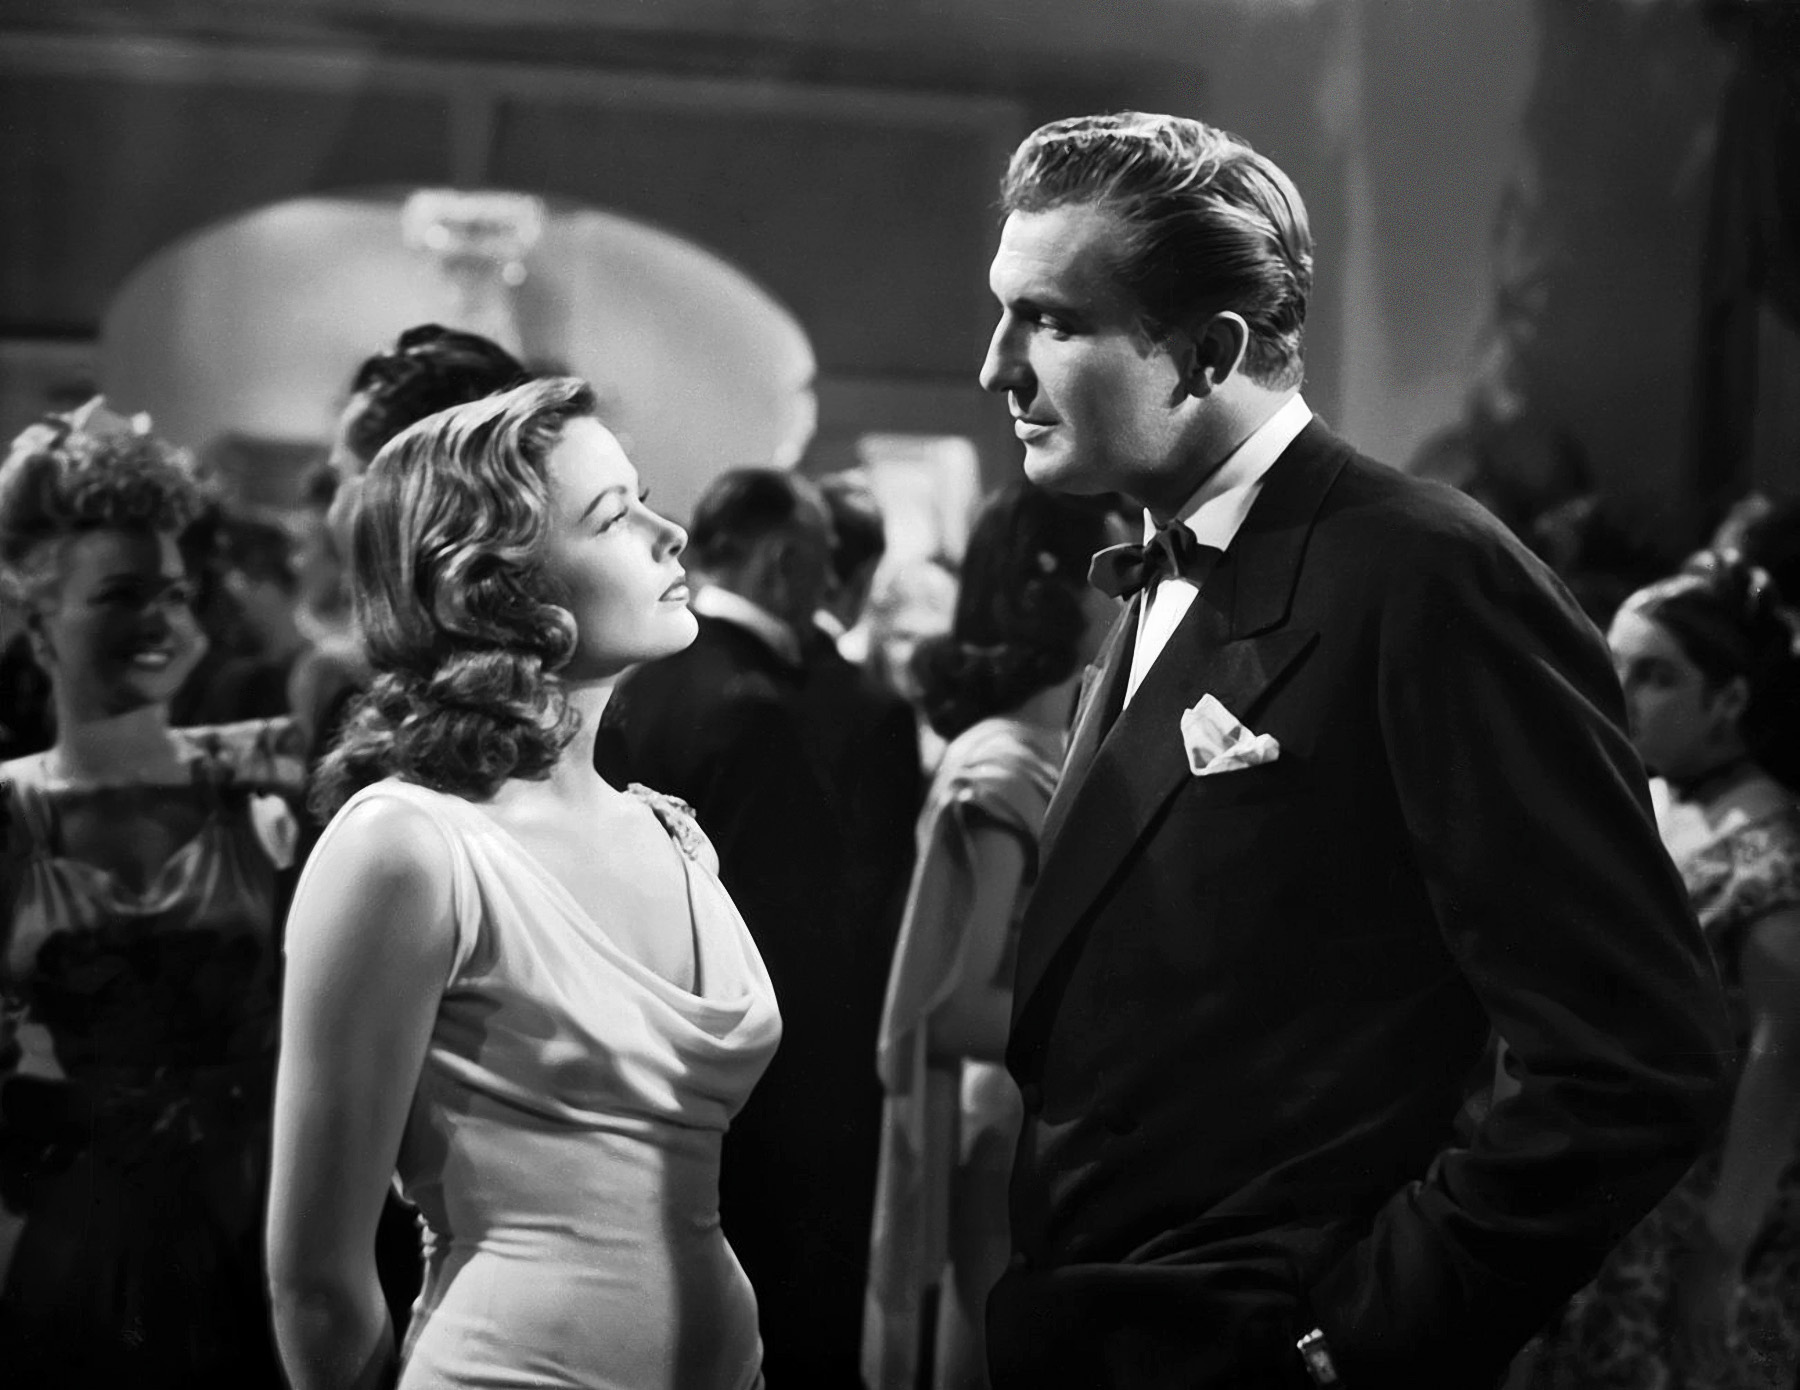 1944: Vincent Price and Gene Tierney in the roles of Shelby Carpenter and Laura respectively, in a scene from the 20th Century Fox film noir, 'Laura', directed by Otto Preminger.